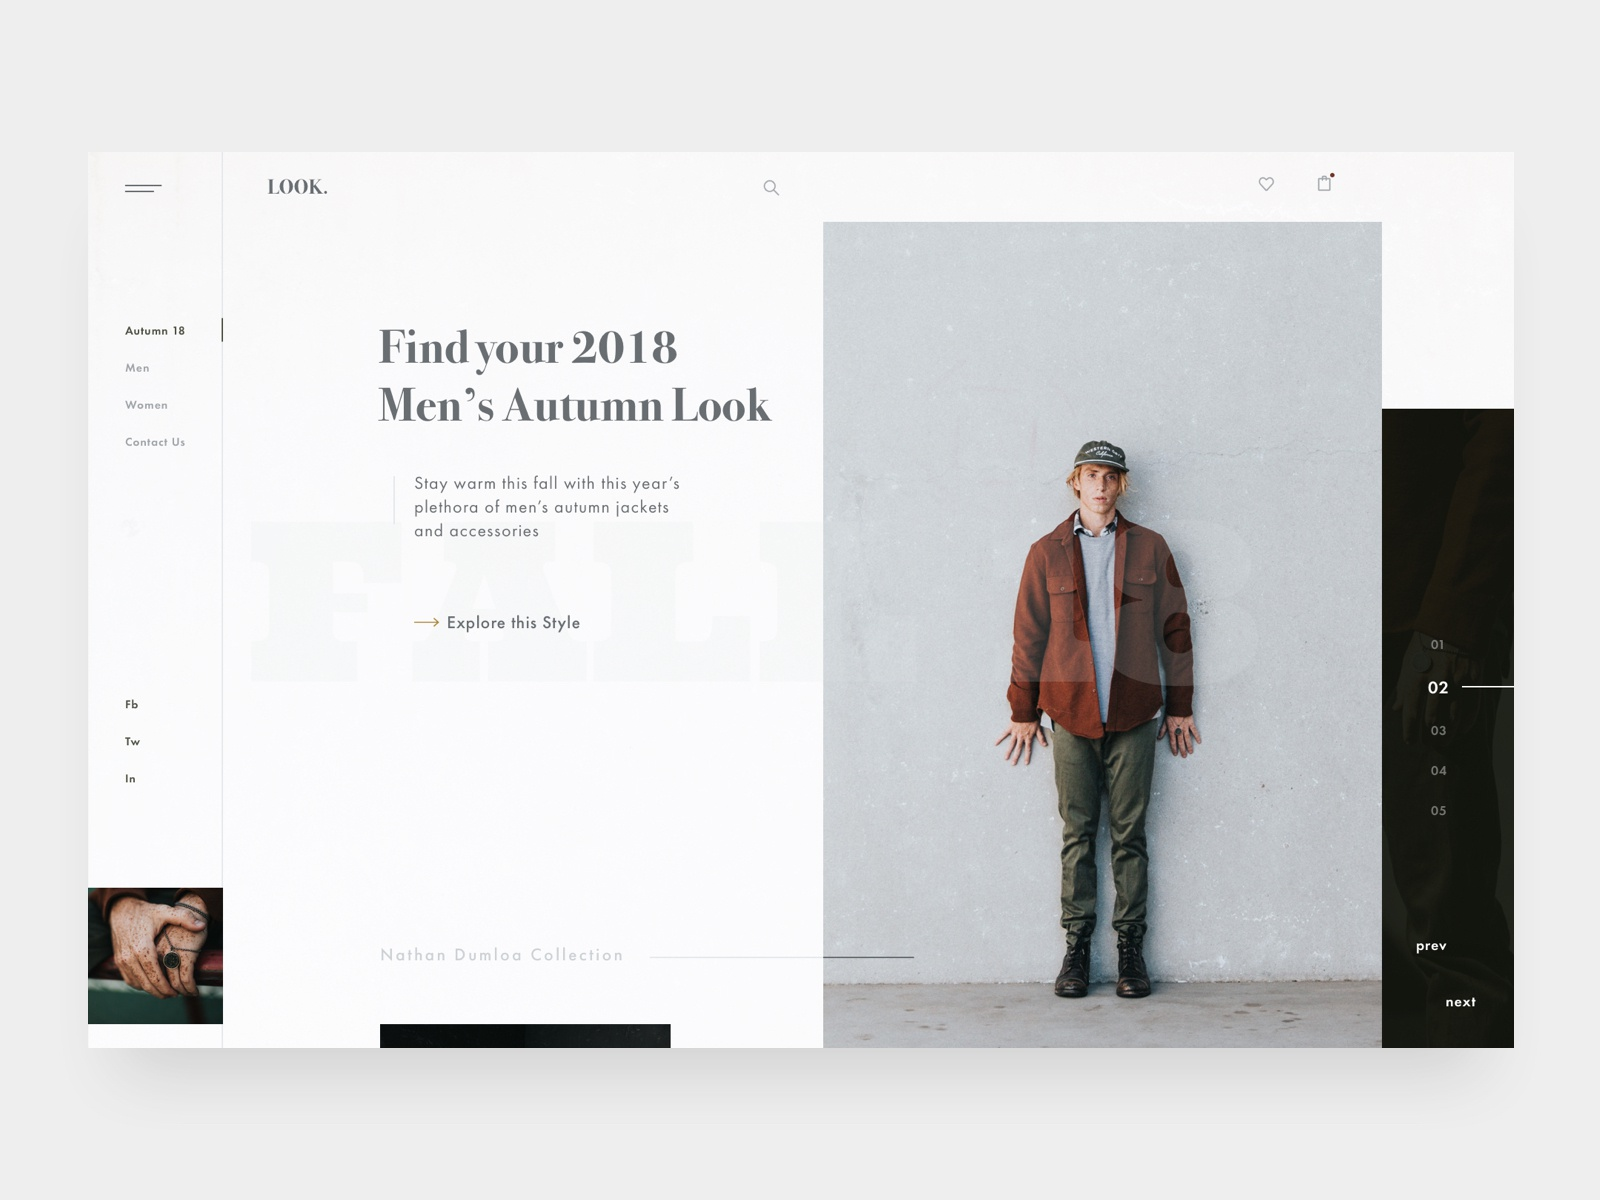 Lookbook layout expoloration i